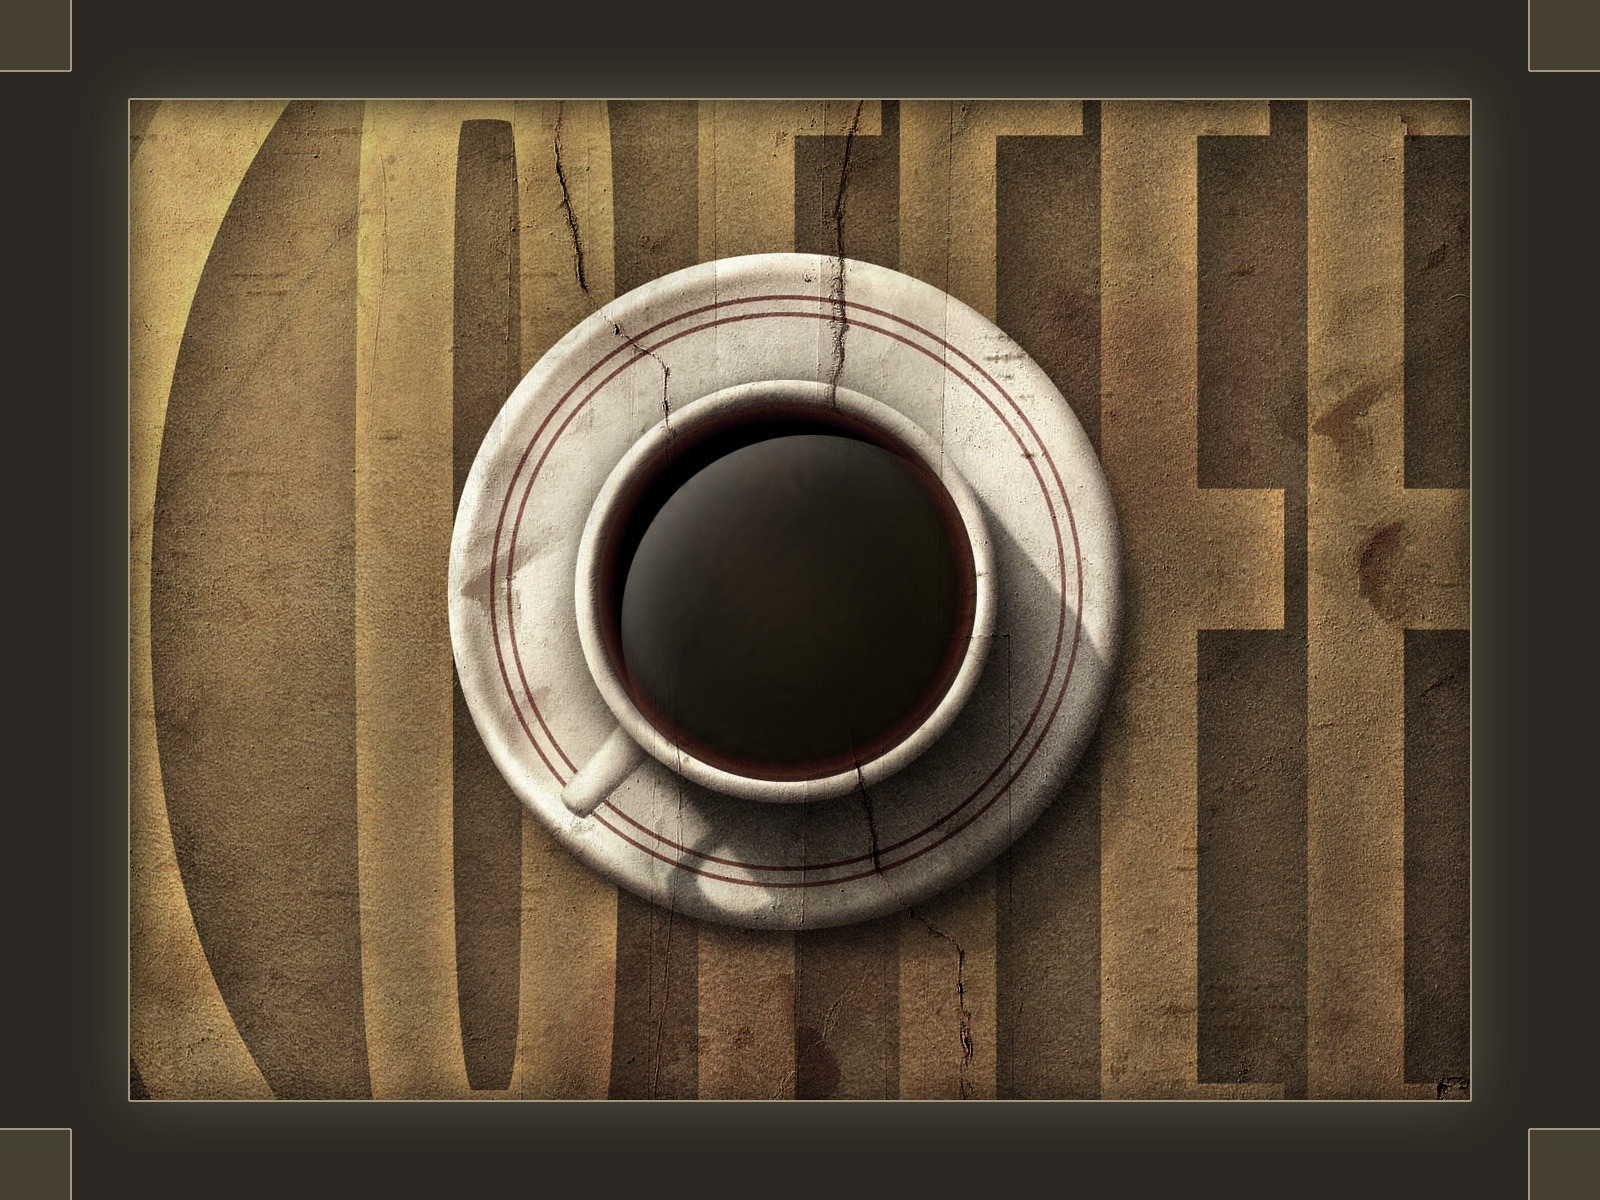 cup of coffee wallpaper abstract 3d wallpapers in jpg format for